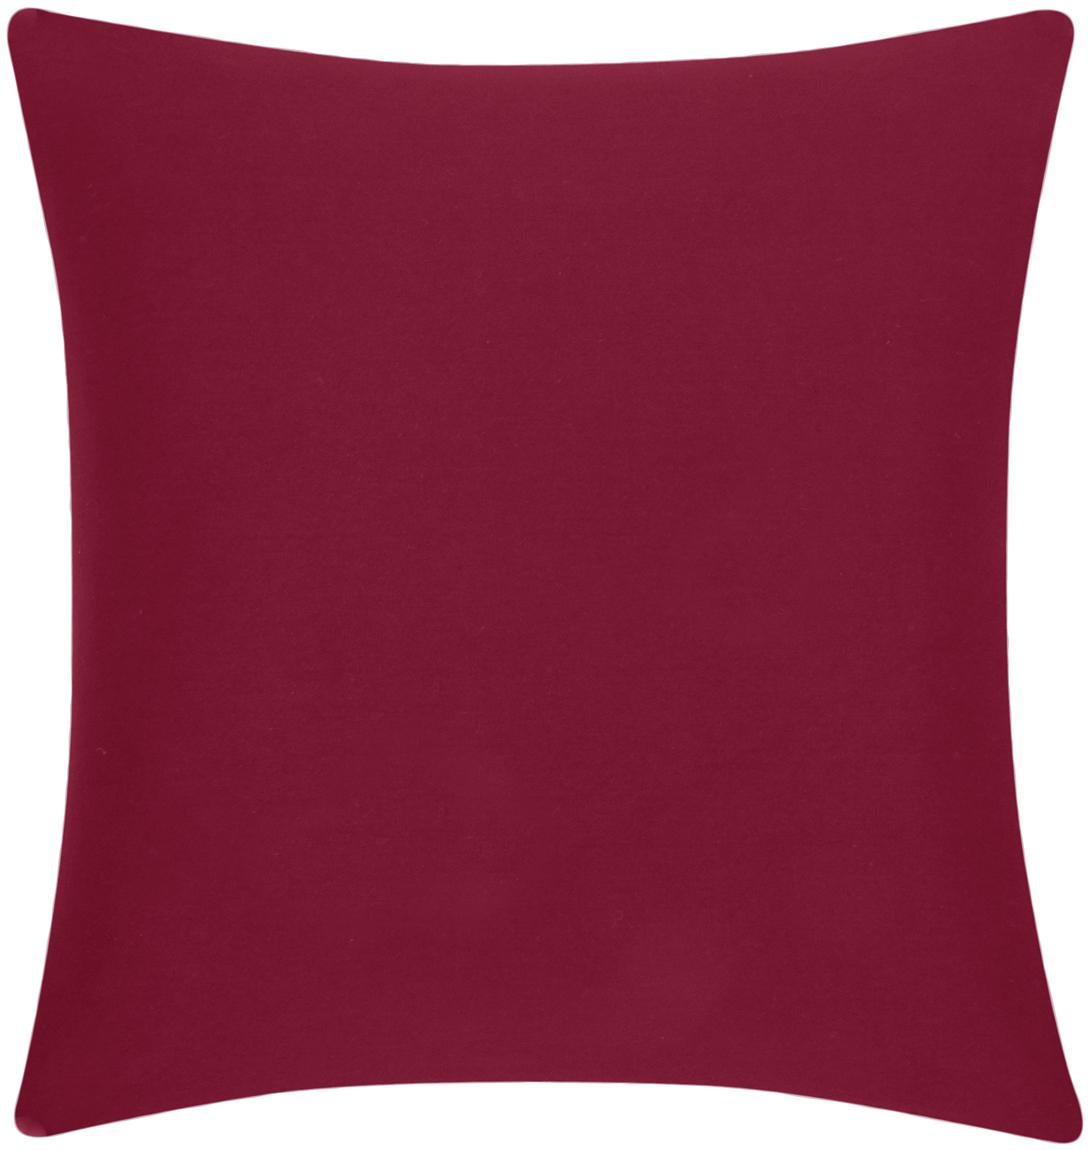 Federa arredo in rosso rosso Mads, 100% cotone, Rosso, Larg. 40 x Lung. 40 cm